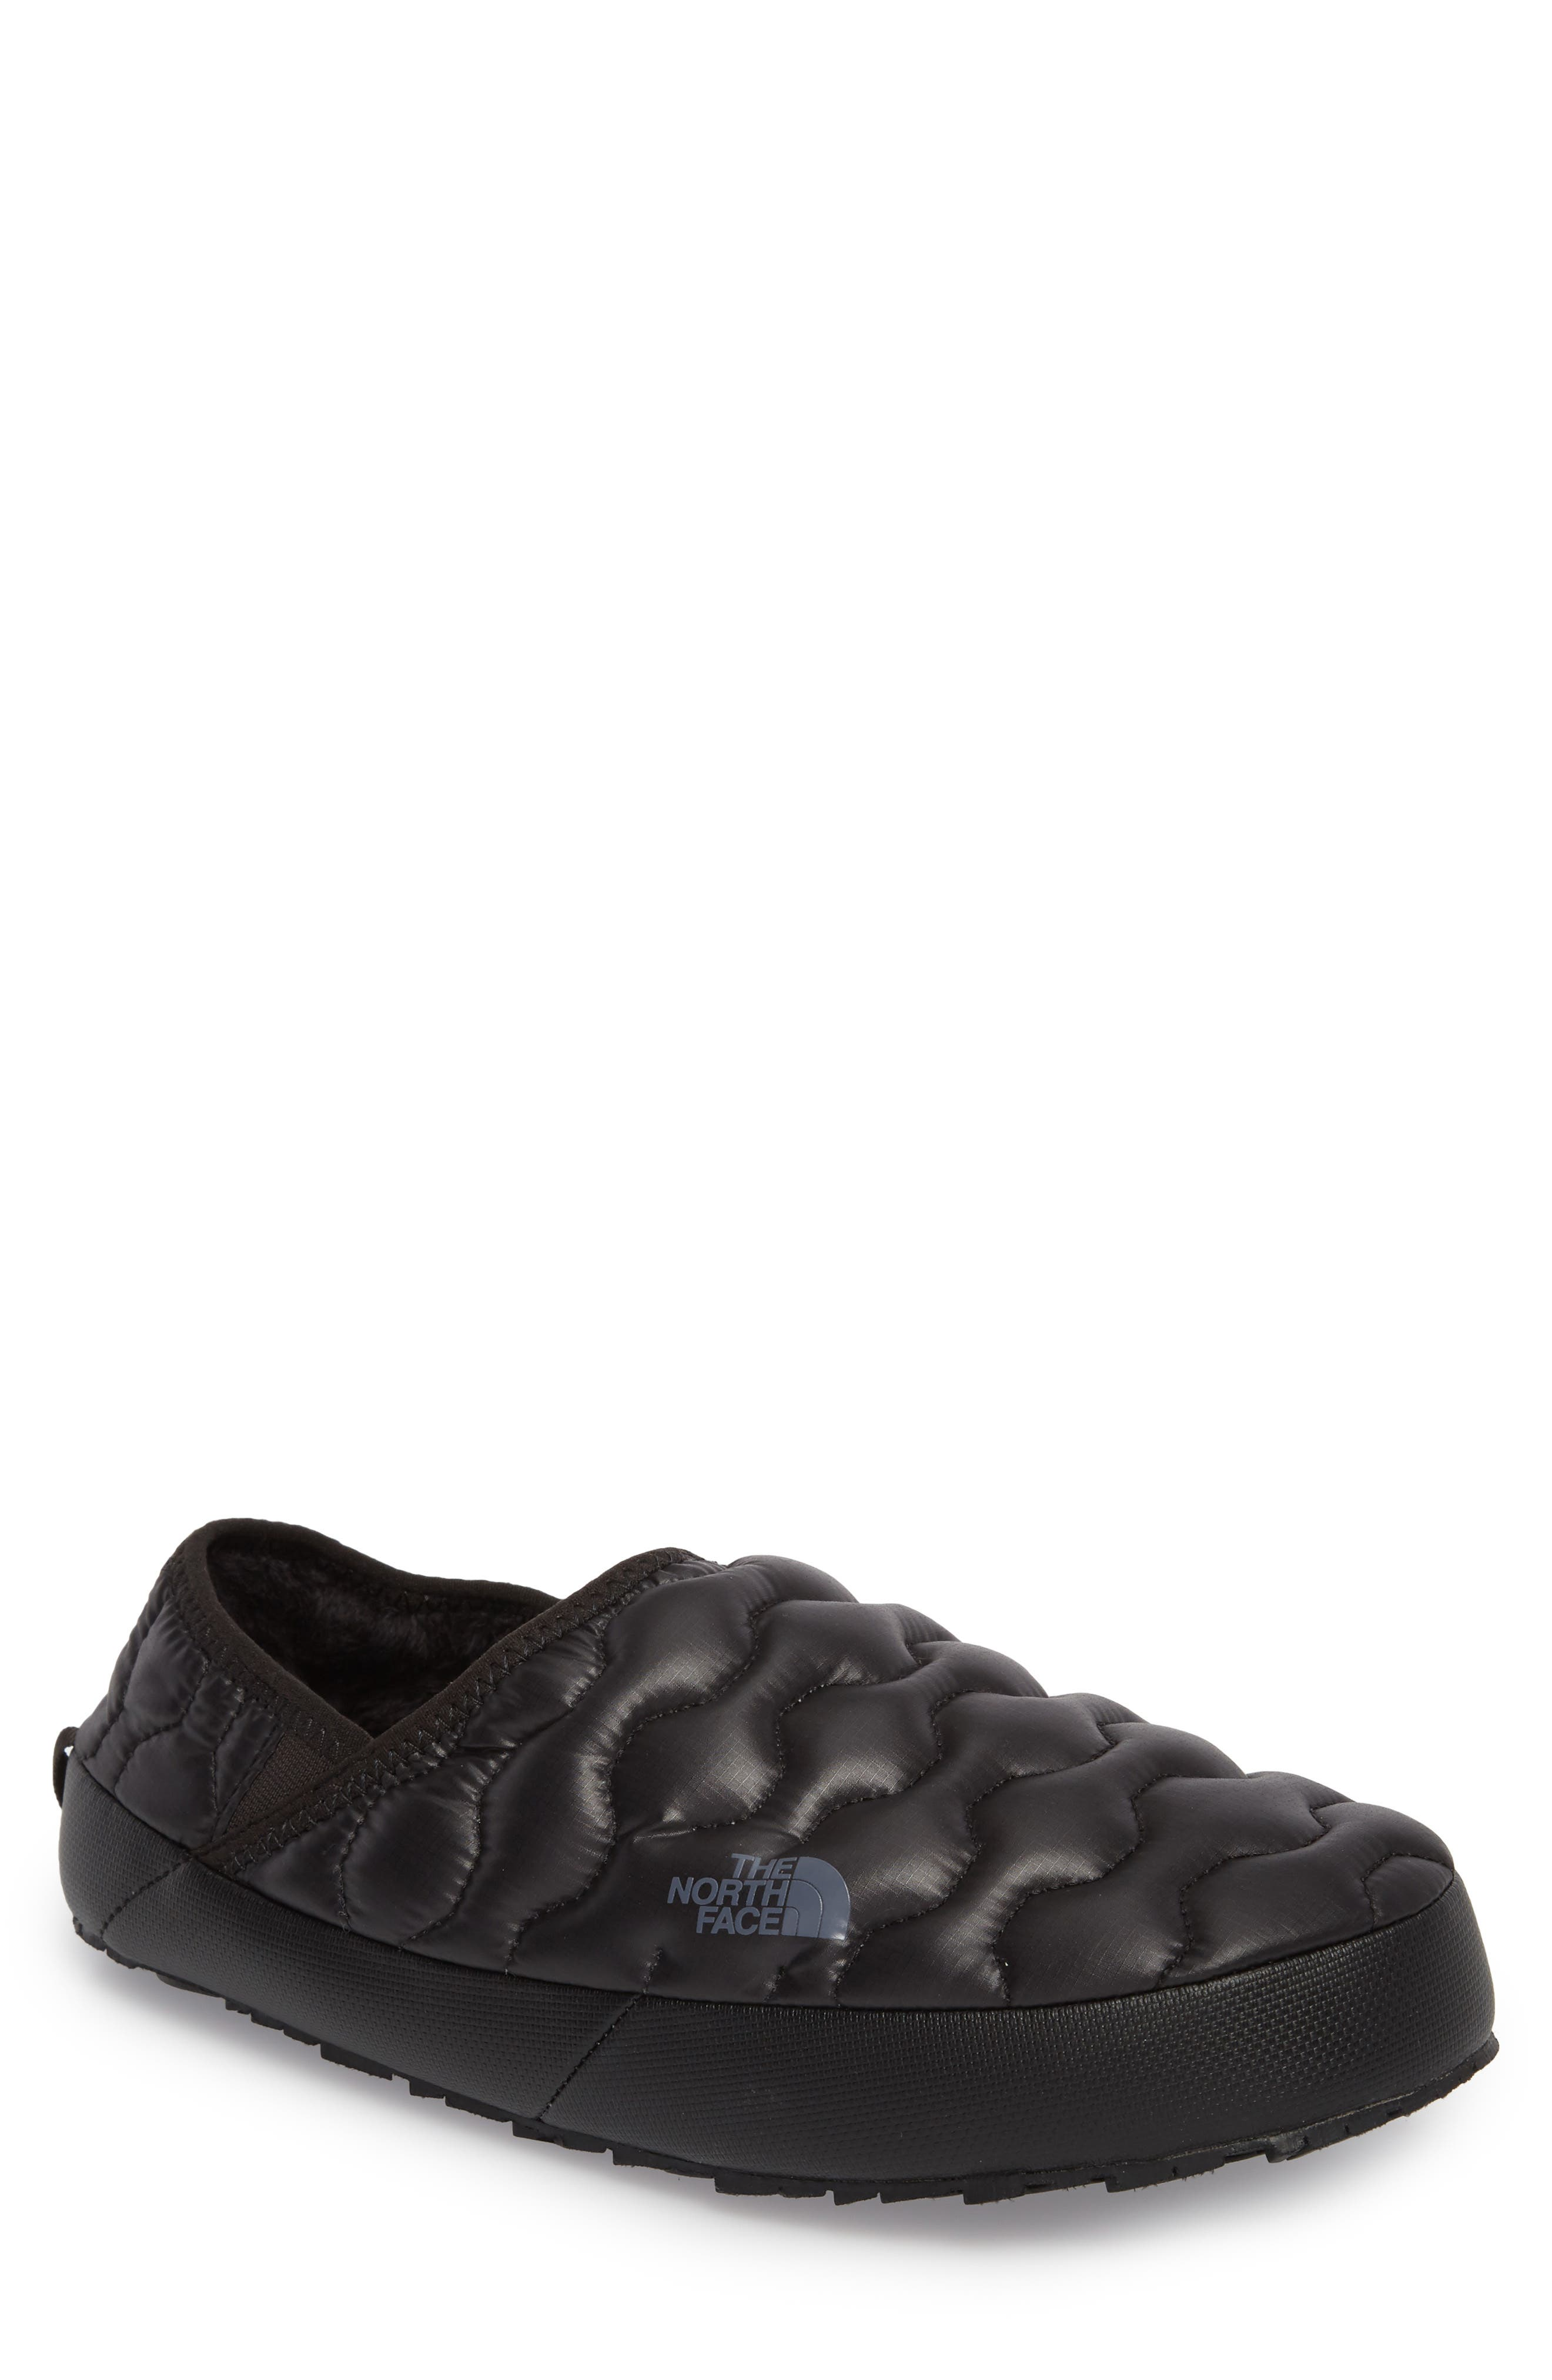 ThermoBall<sup>™</sup> Water-Resistant Traction slipper,                             Main thumbnail 1, color,                             SHINY BLACK/ DARK GREY